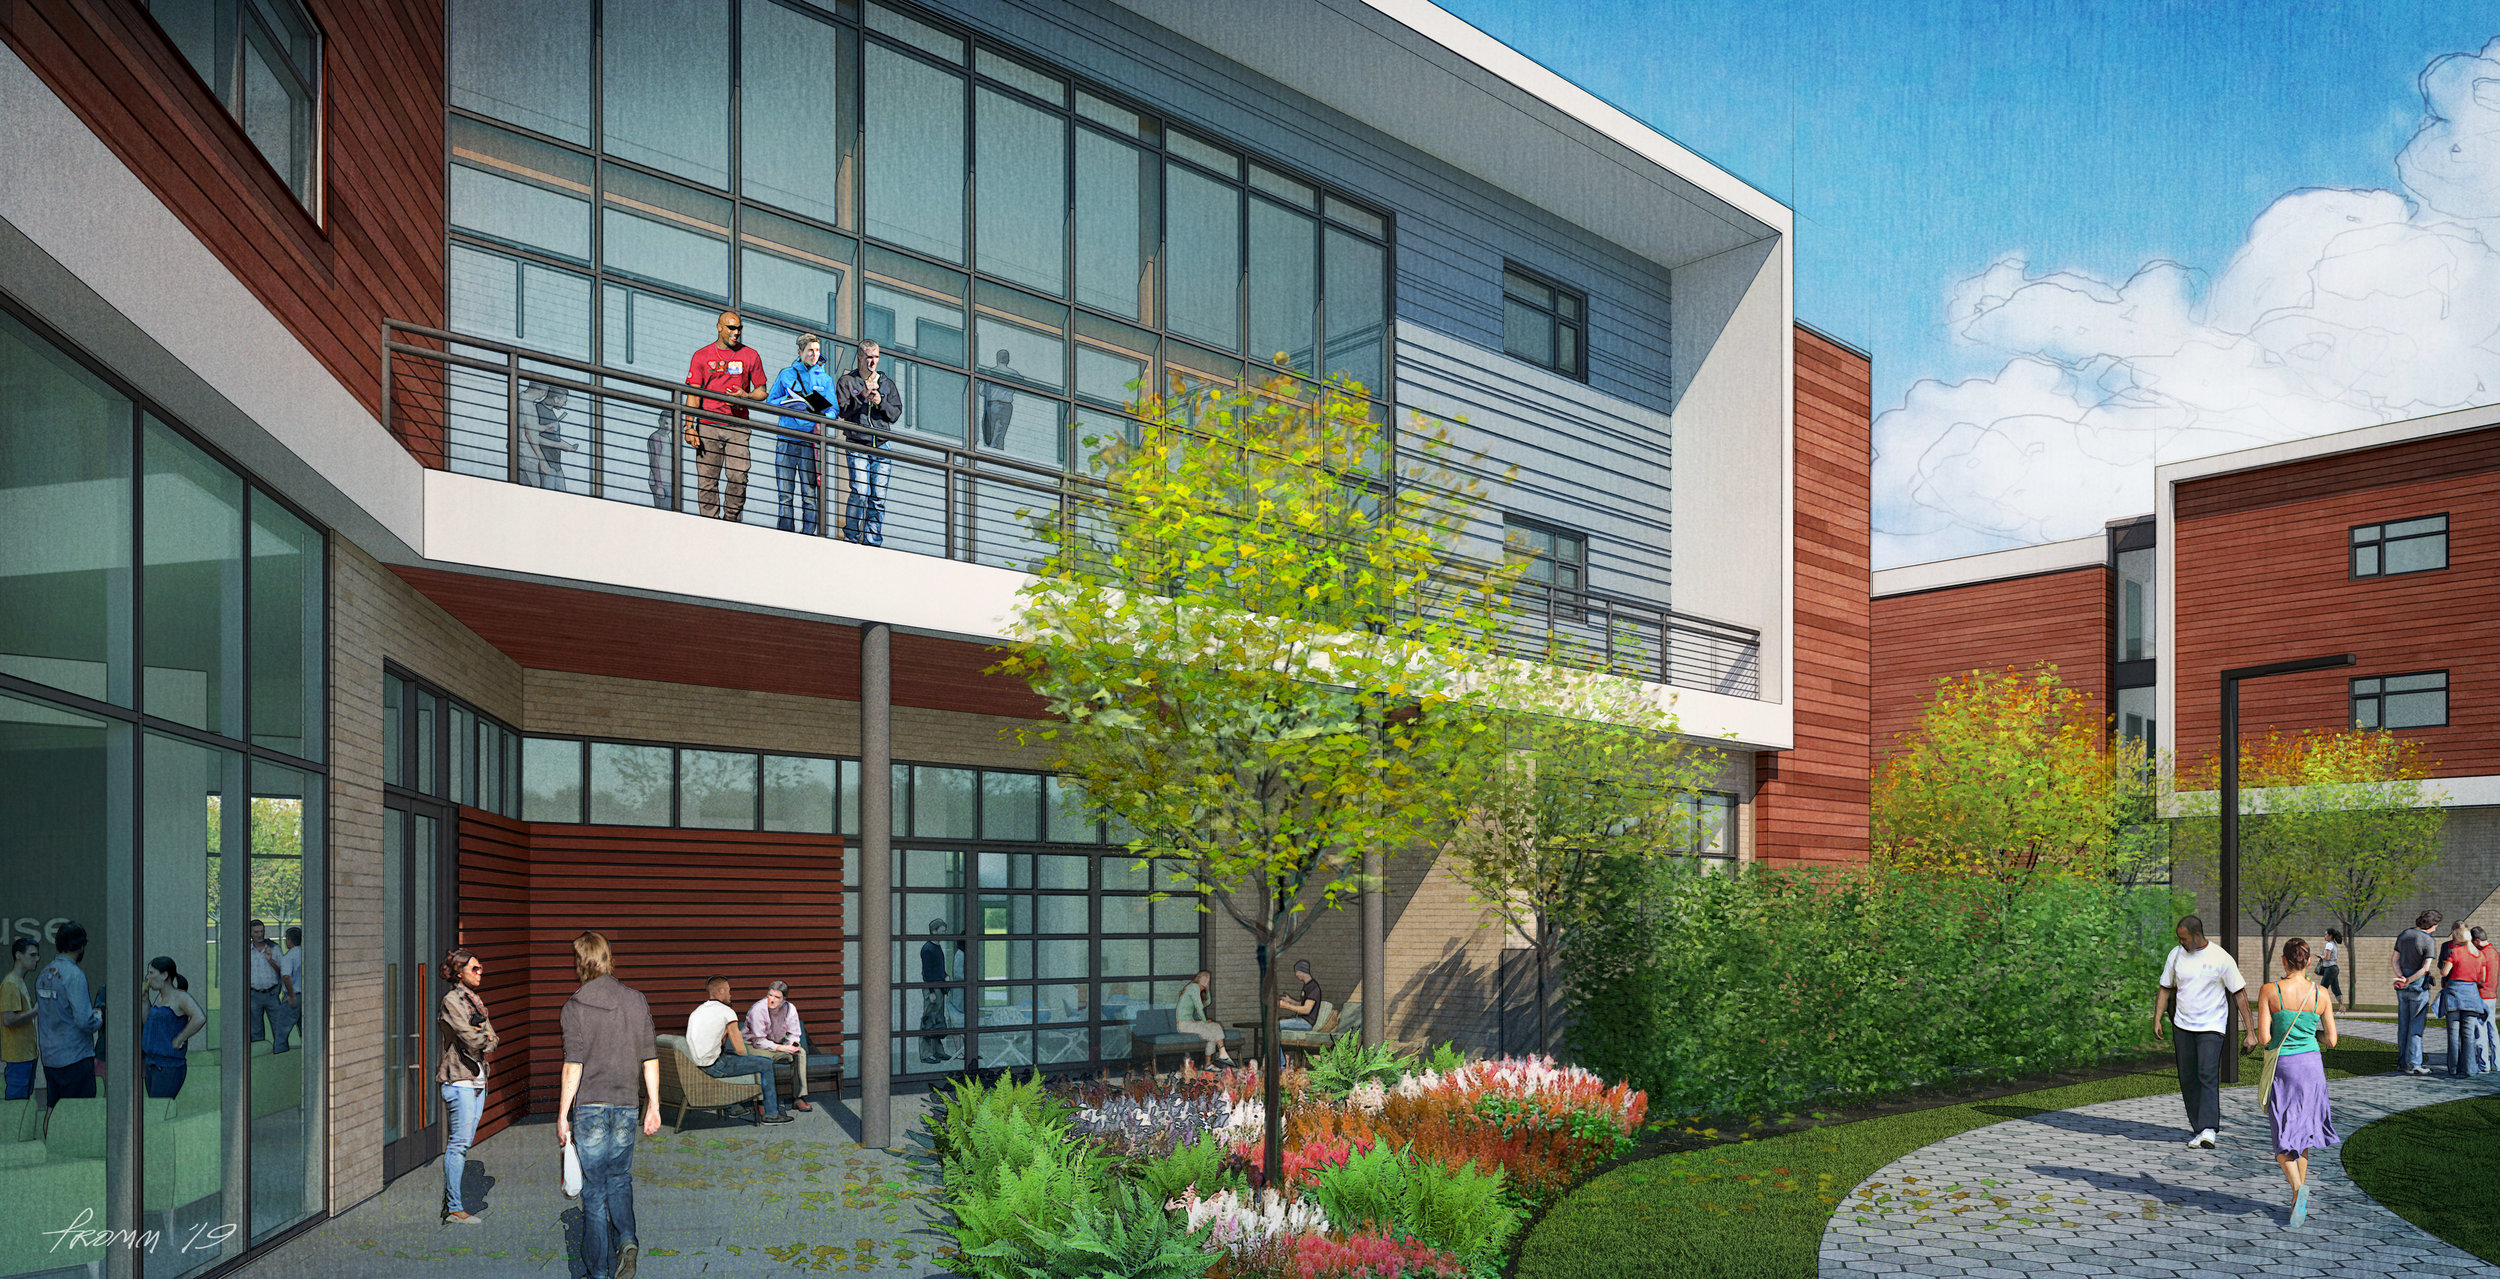 The first Sober Living building (under construction) will house 56 beds and ground floor amenities – work out facility, group counselling rooms, a coffee bar, and a spiritual/tranquility retreat.  Rendering: Champlin Architecture